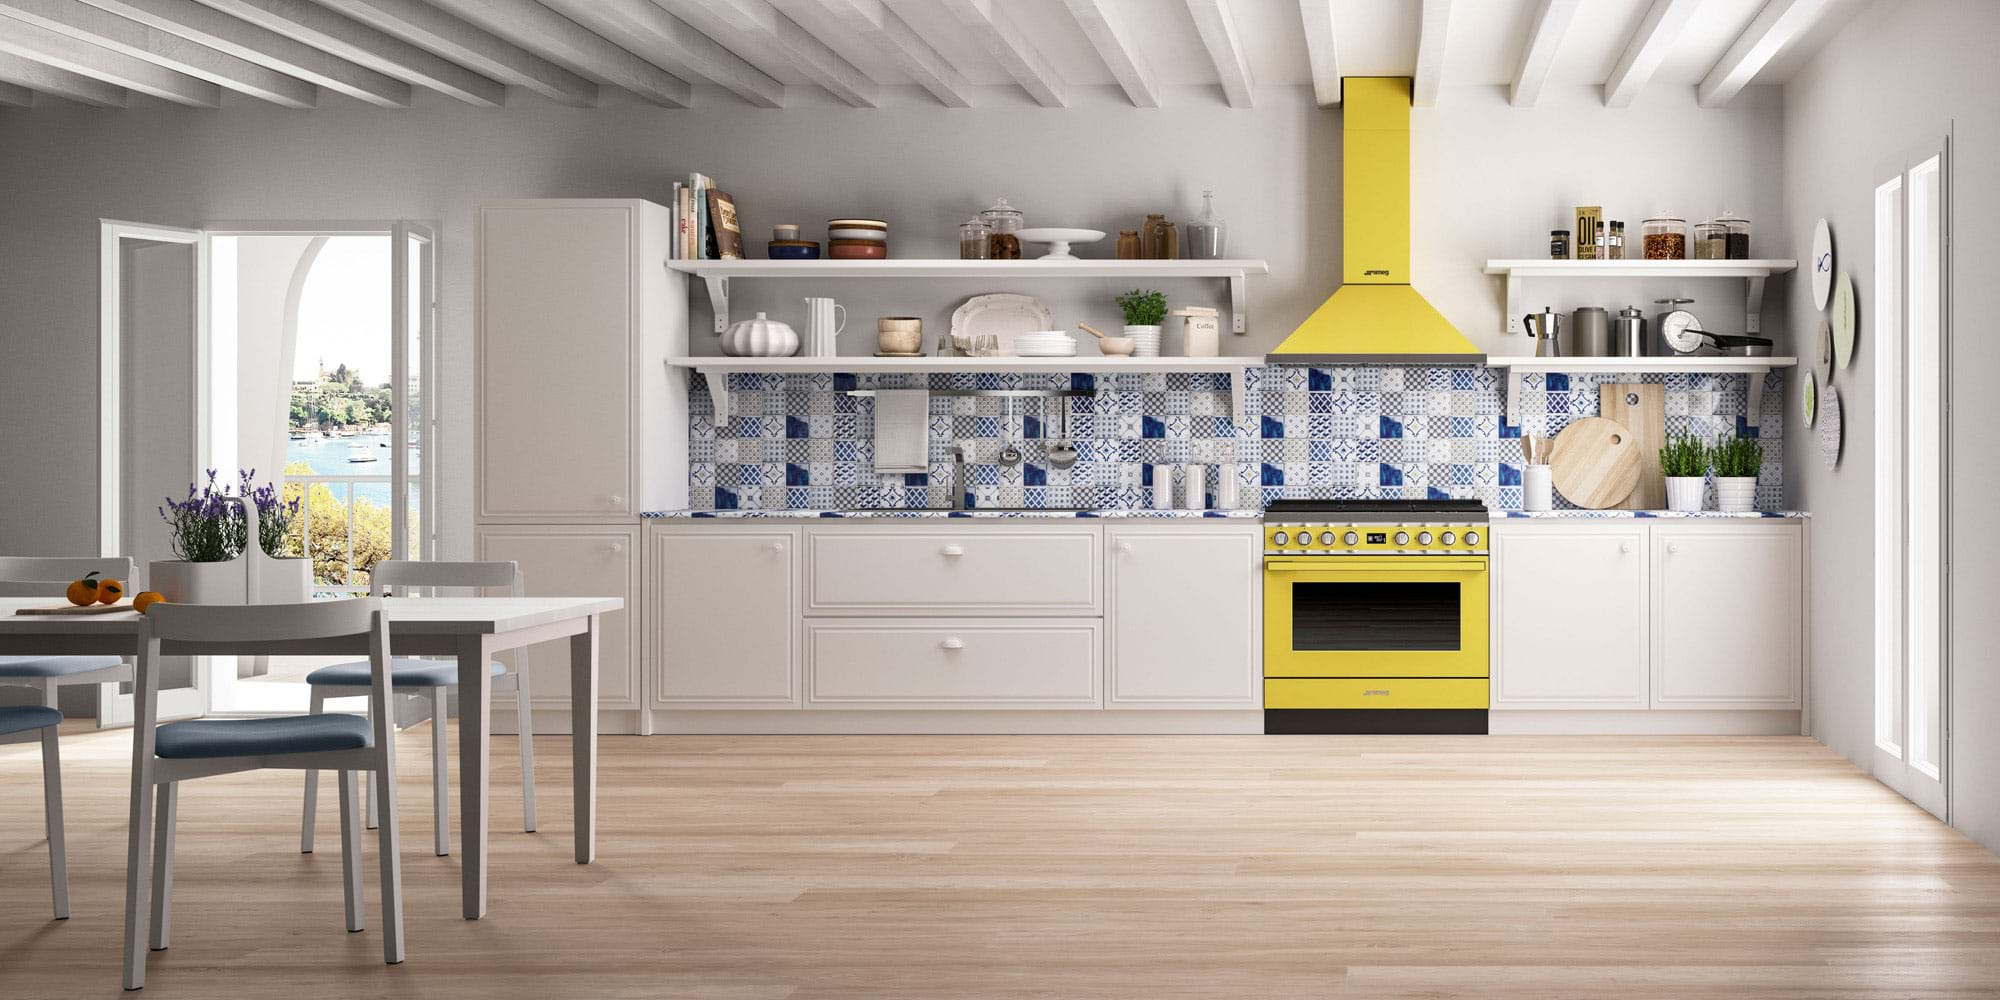 Kitchen Trends For 2020.8 Top Trends In Kitchen Design For 2020 Kitchens Leekes